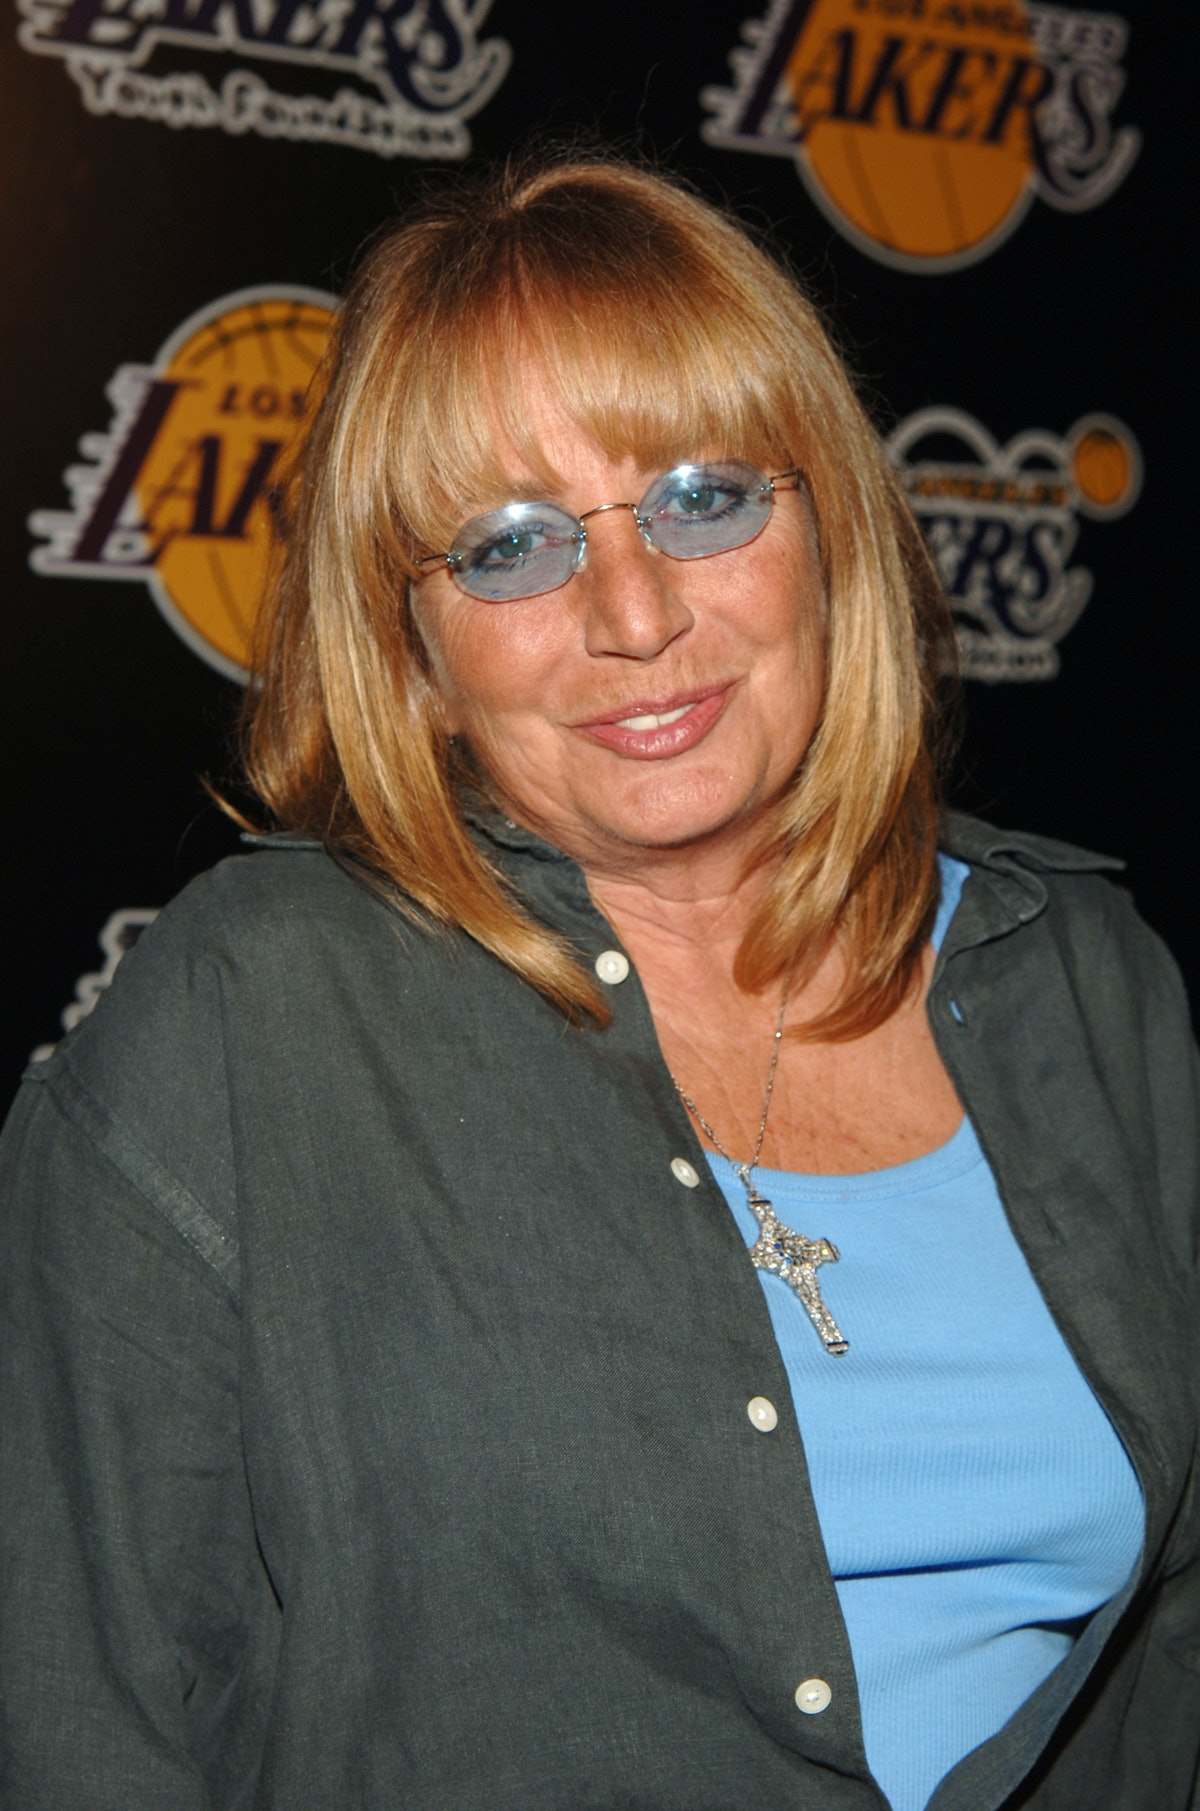 Director Penny Marshall Has Died At 75 & She Leaves Behind A Truly Groundbreaking Legacy